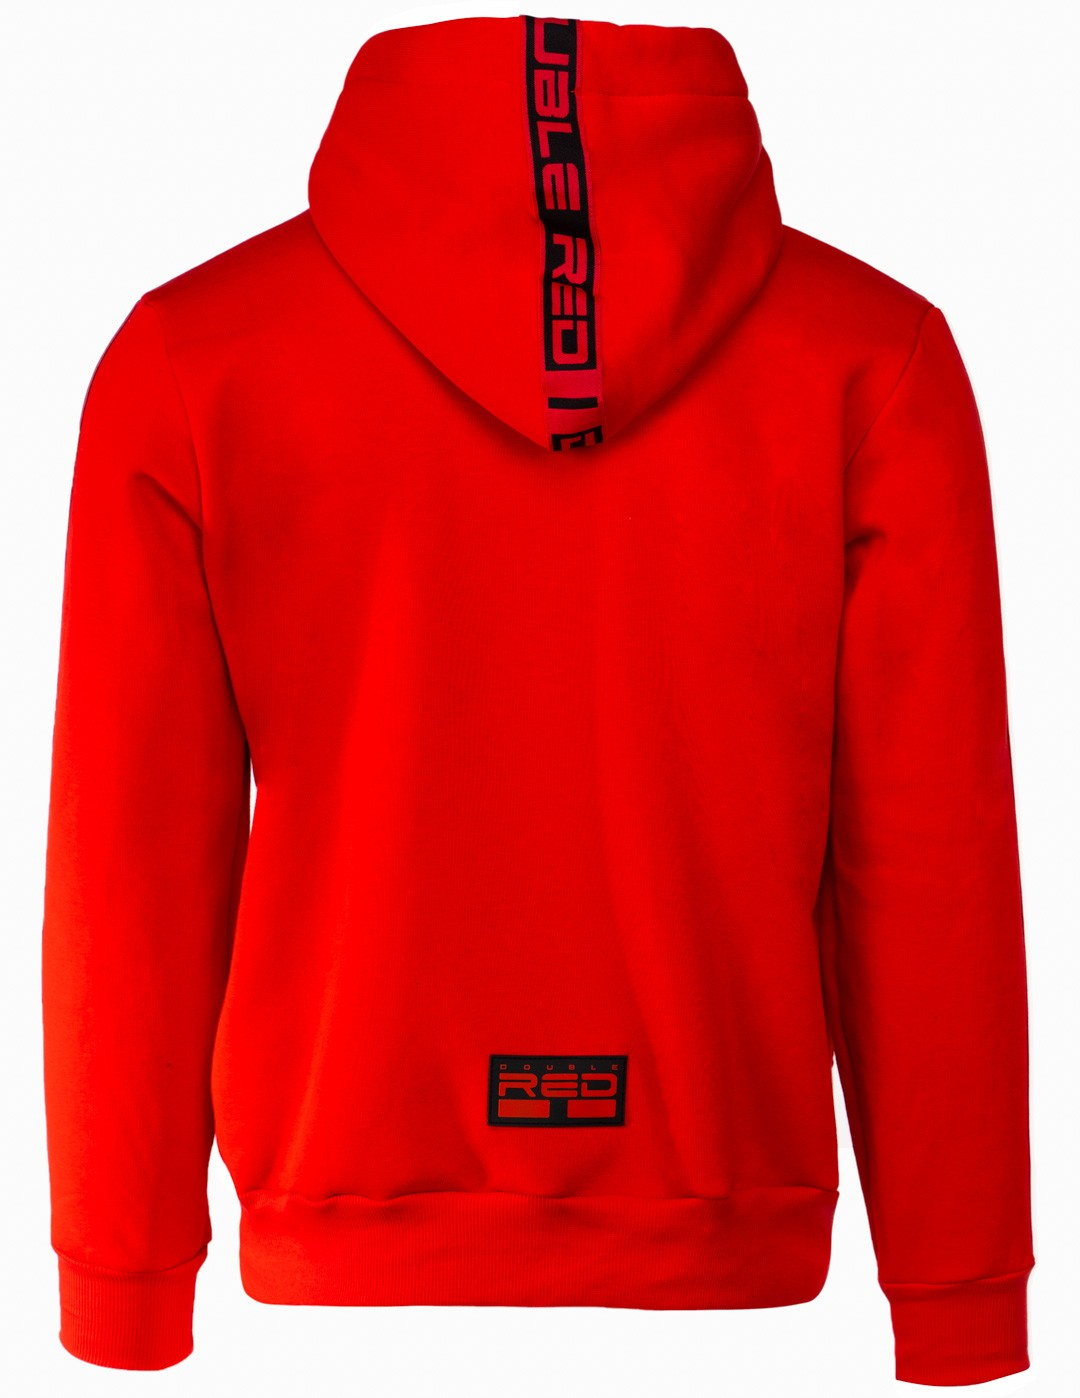 OUTSTANDING FCK COVID LIMITED EDITION Red